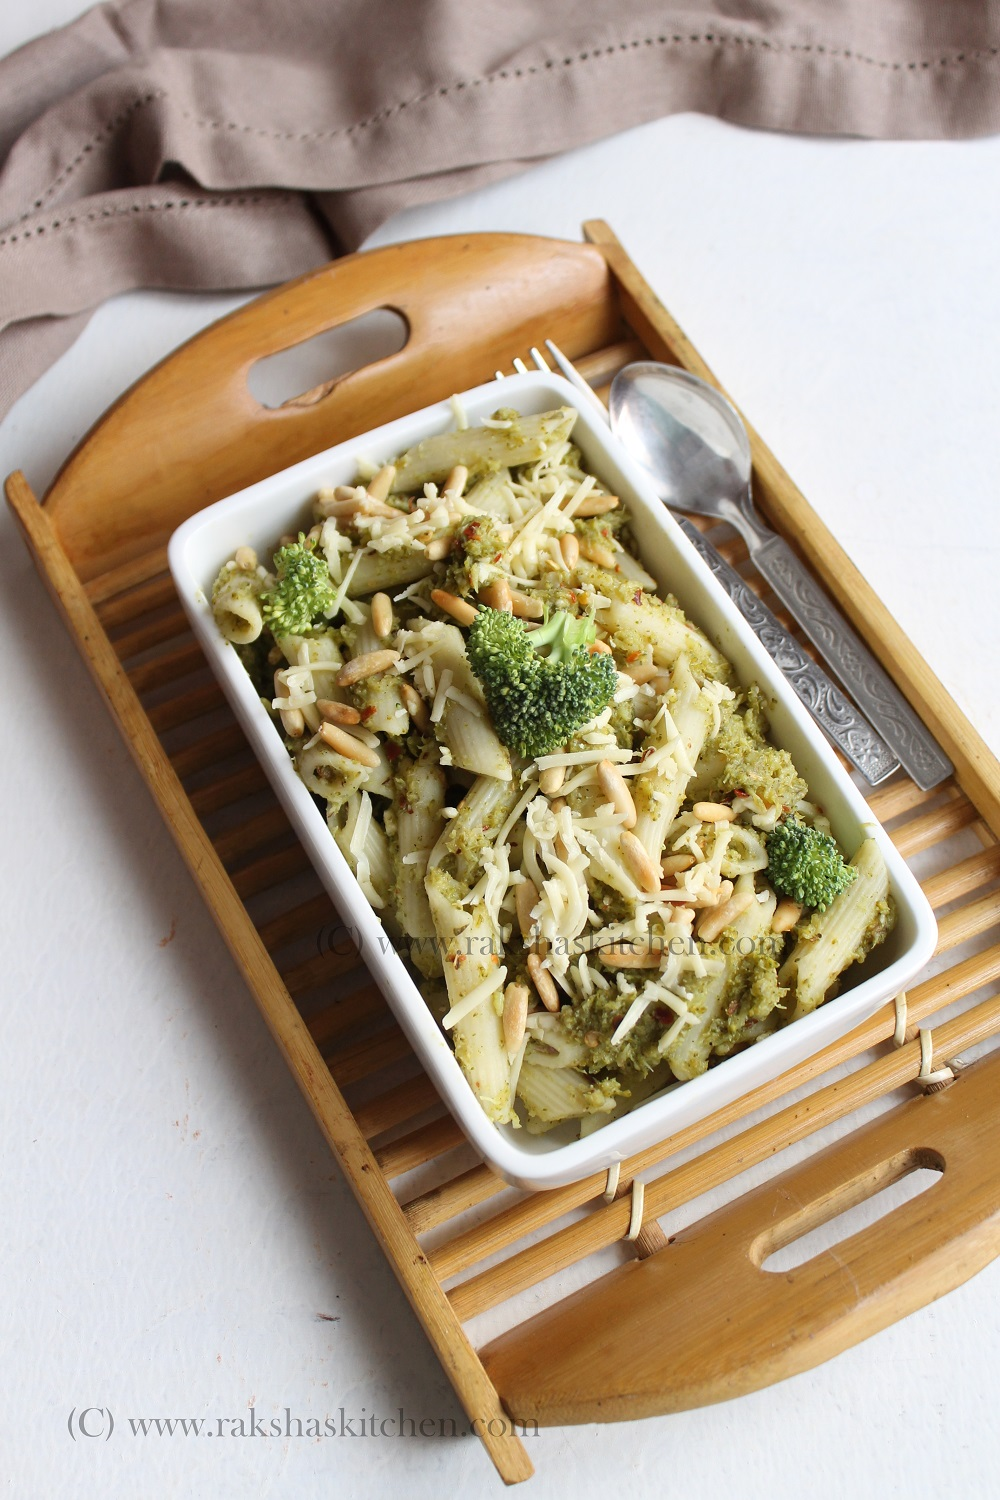 Broccoli Pesto Pasta With Pine Nuts - Raksha's Kitchen